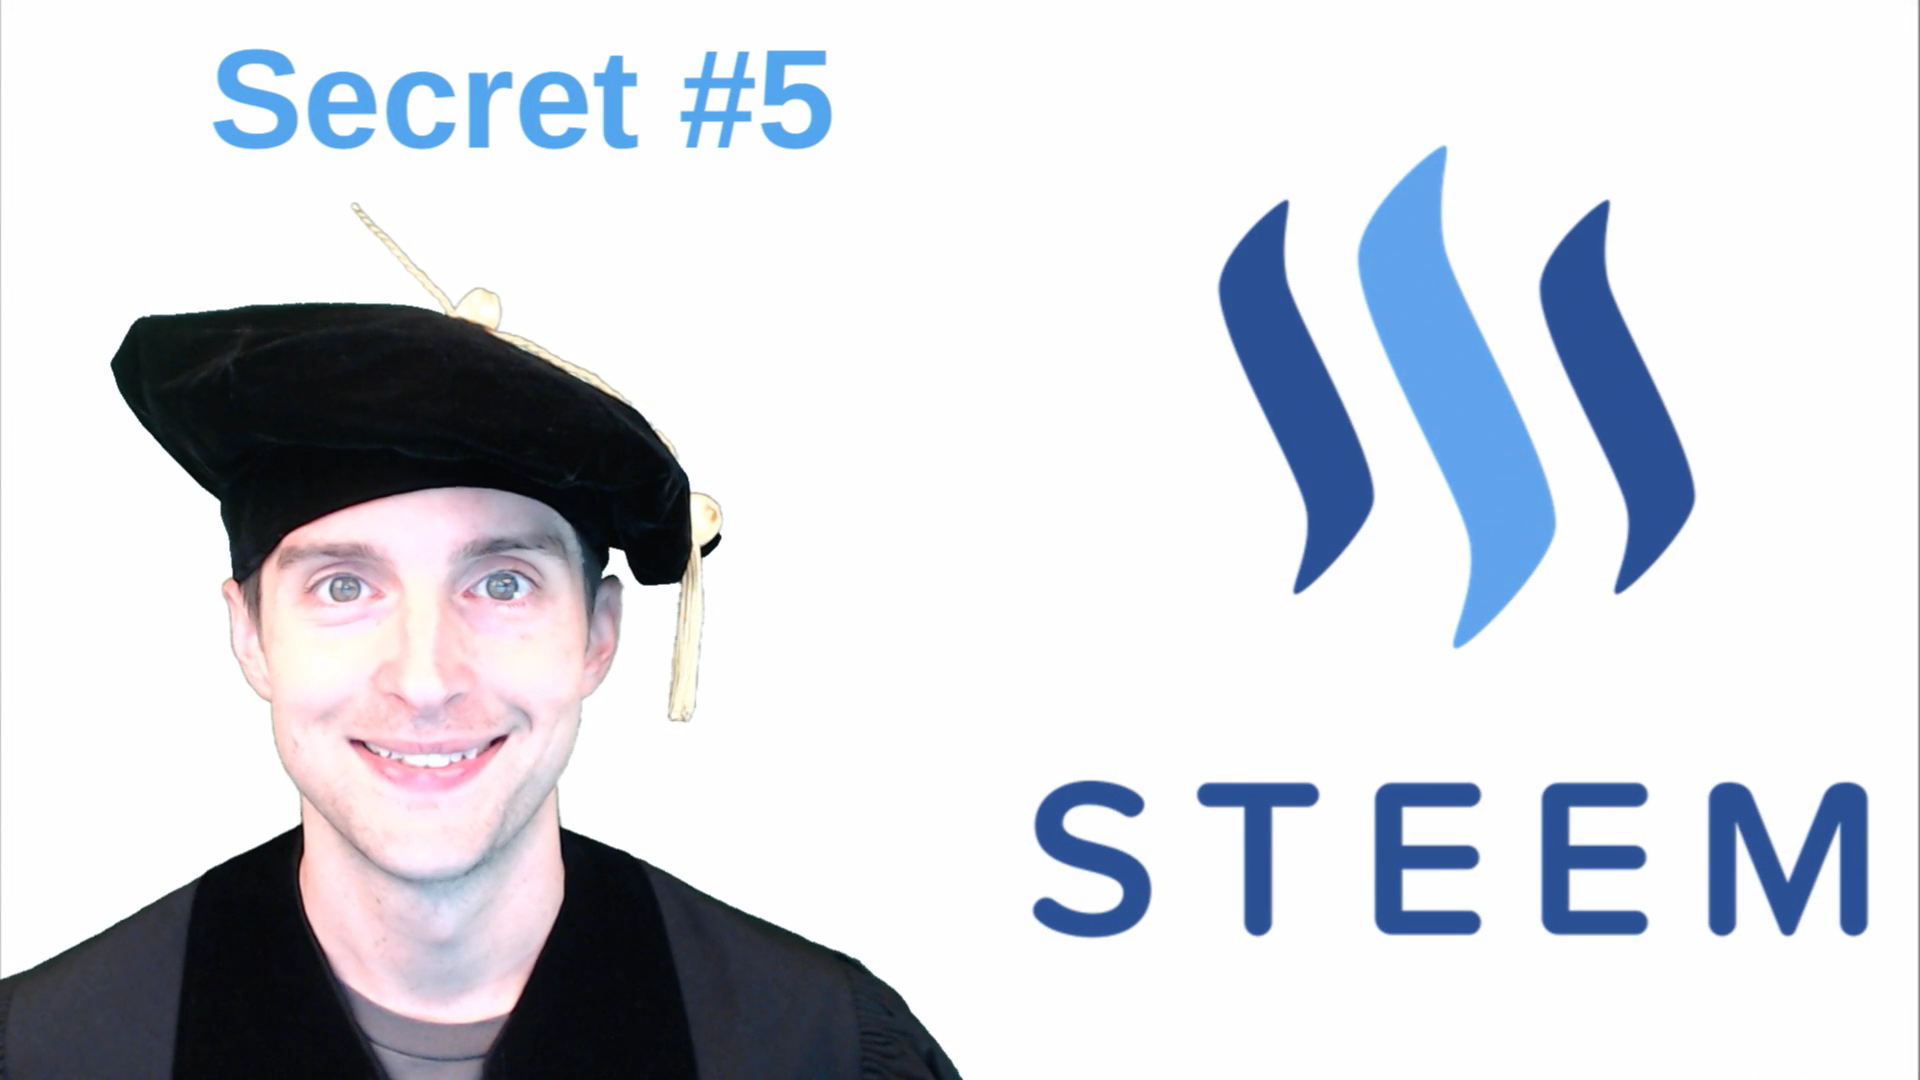 steem secret 5.png